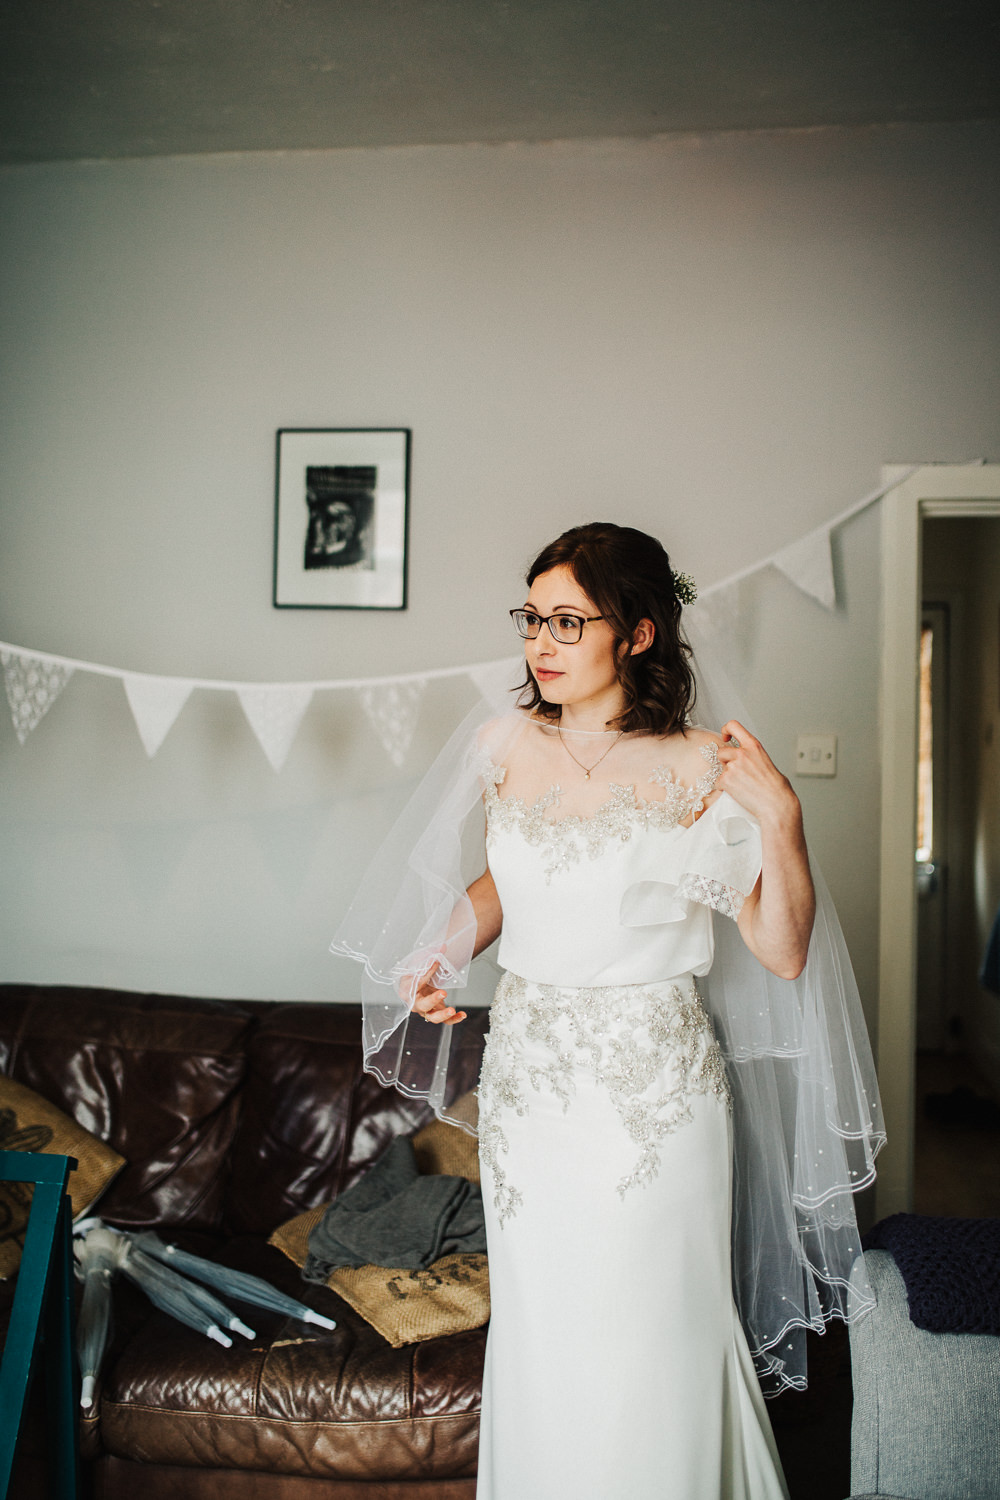 Bride Bridal Enzoani Fitted Wedding Dress Embellished Cap Sleeve Gypsophila Veil Whimsical Countryside Sperry Tent Wedding Emilie May Photography